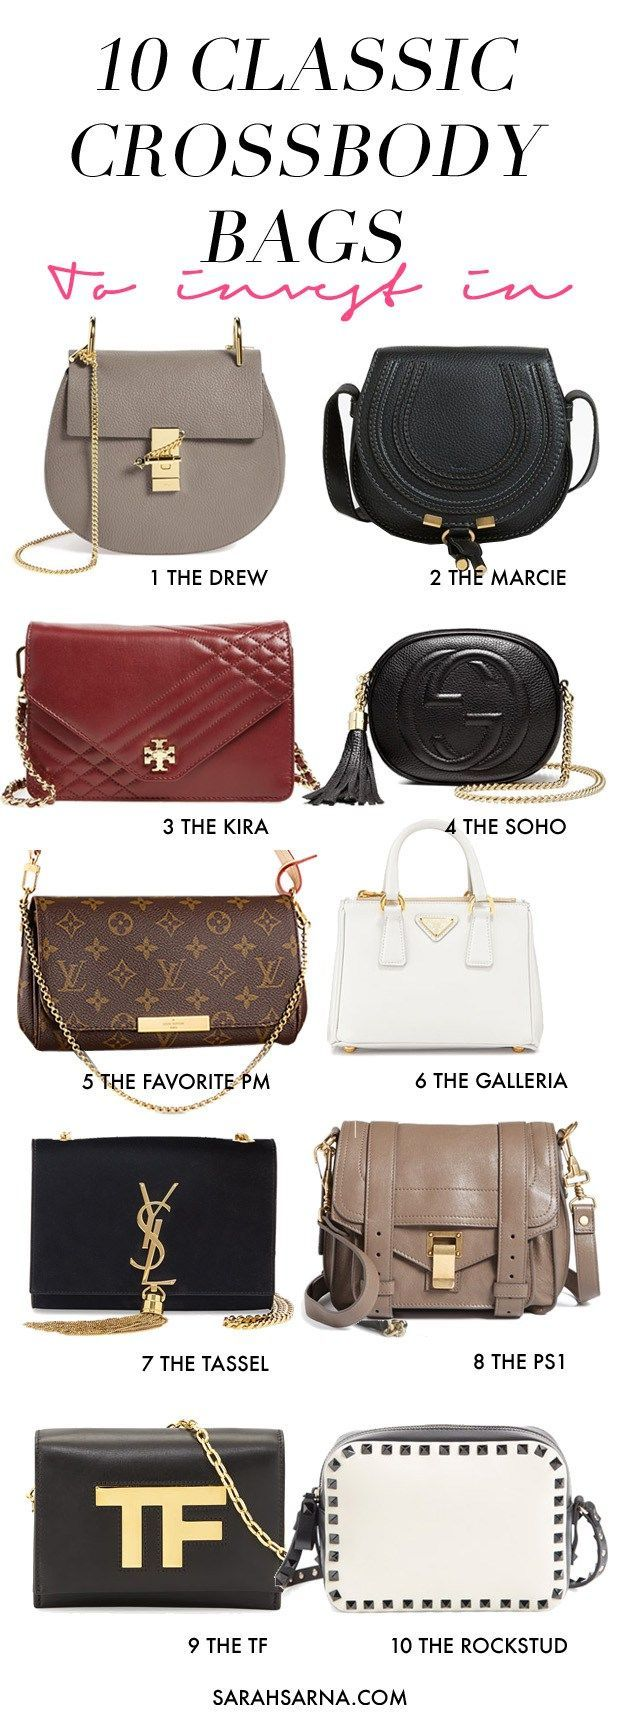 32b34b37c5a6 10 Classic Crossbody Bags to Invest In